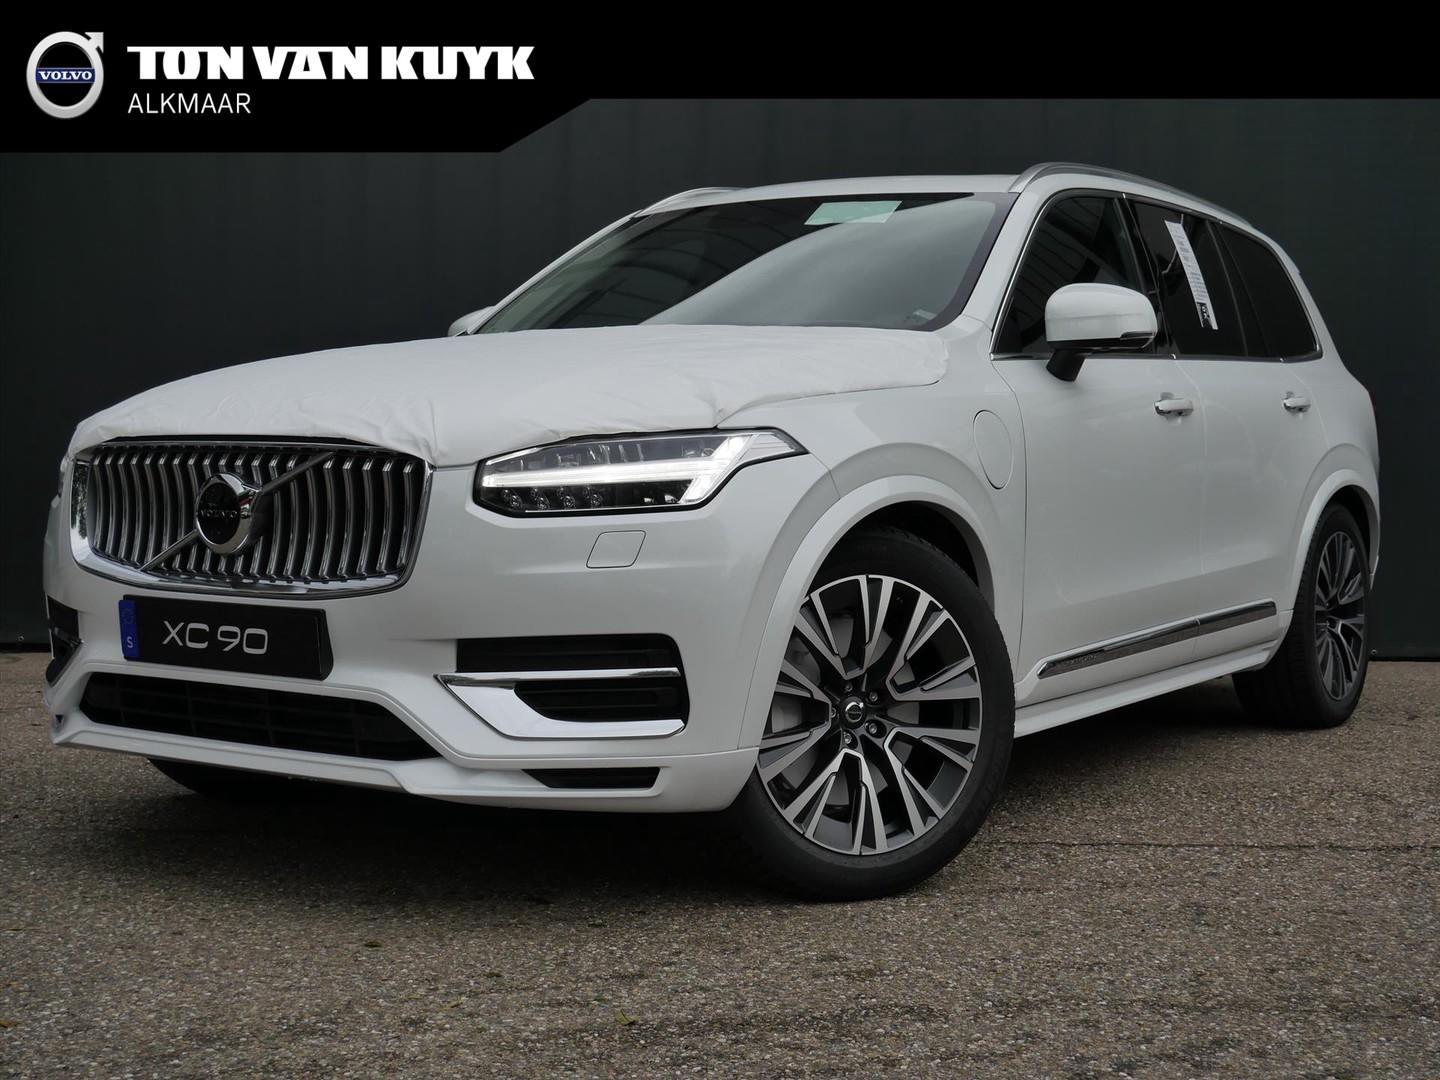 Volvo Xc90 T8 twin engine 390pk automaat awd intro edition 7p / inscription plus line / luchtvering